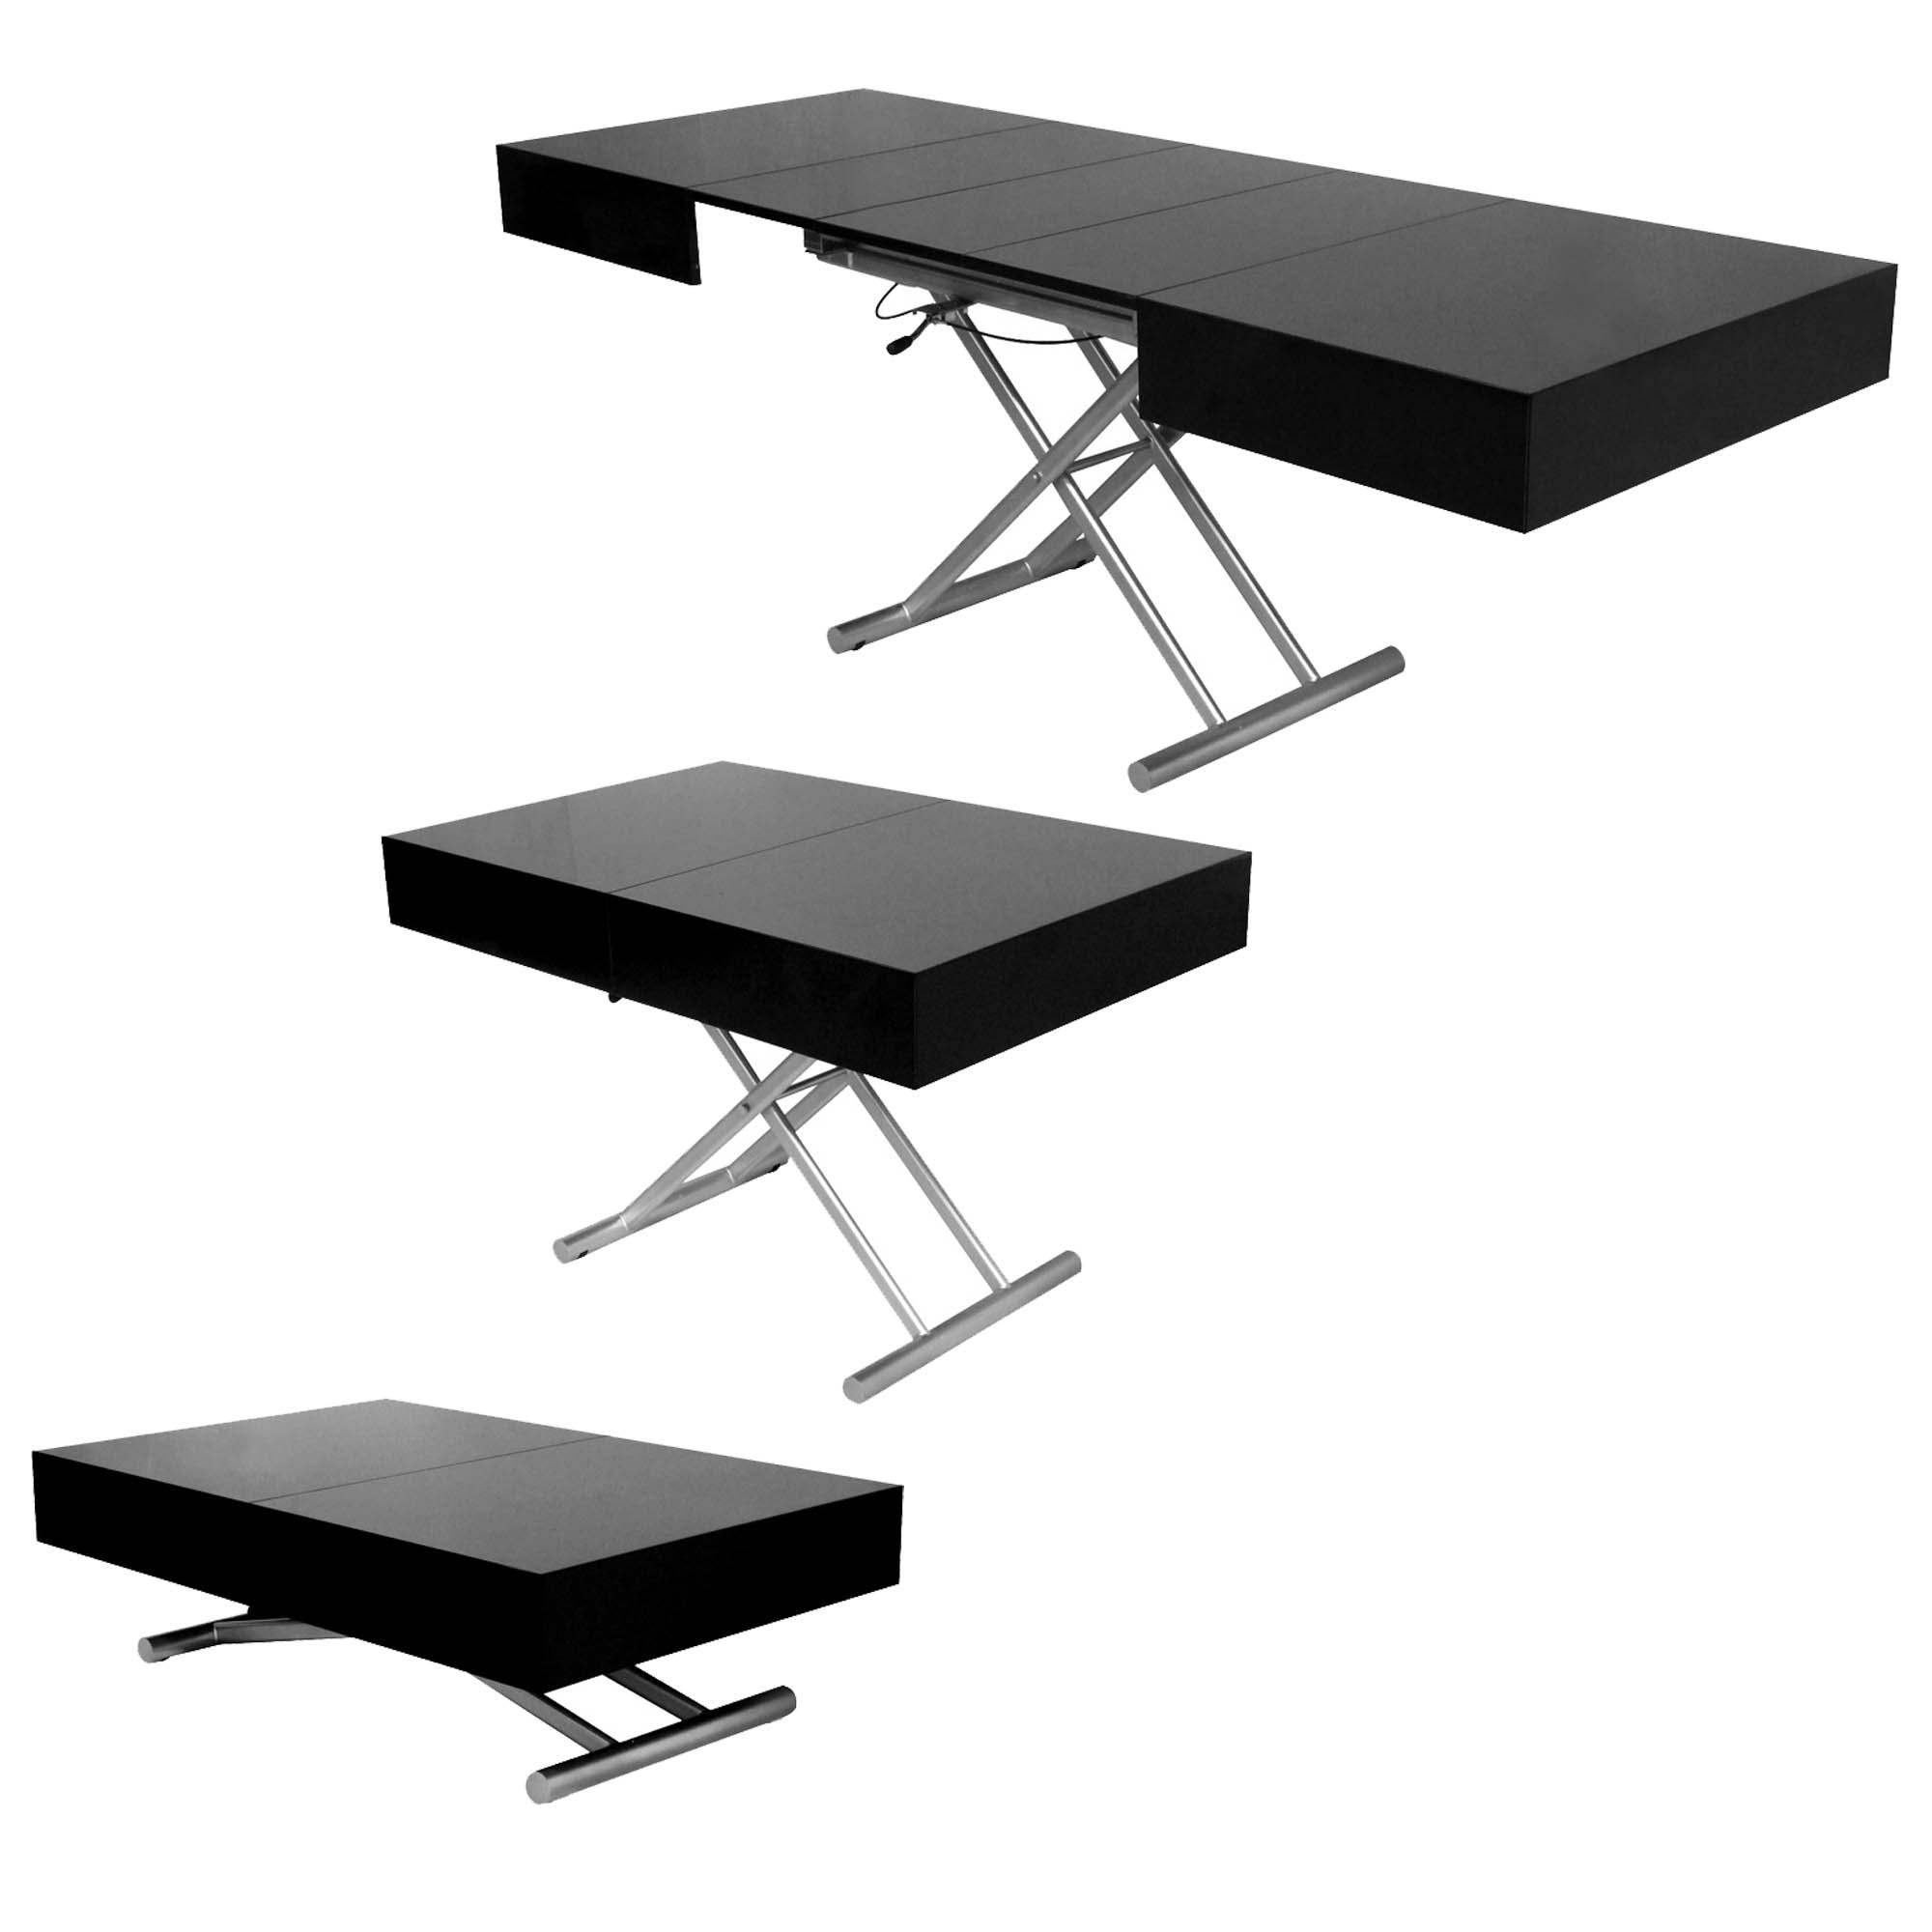 deco in paris table basse relevable extensible laquee. Black Bedroom Furniture Sets. Home Design Ideas